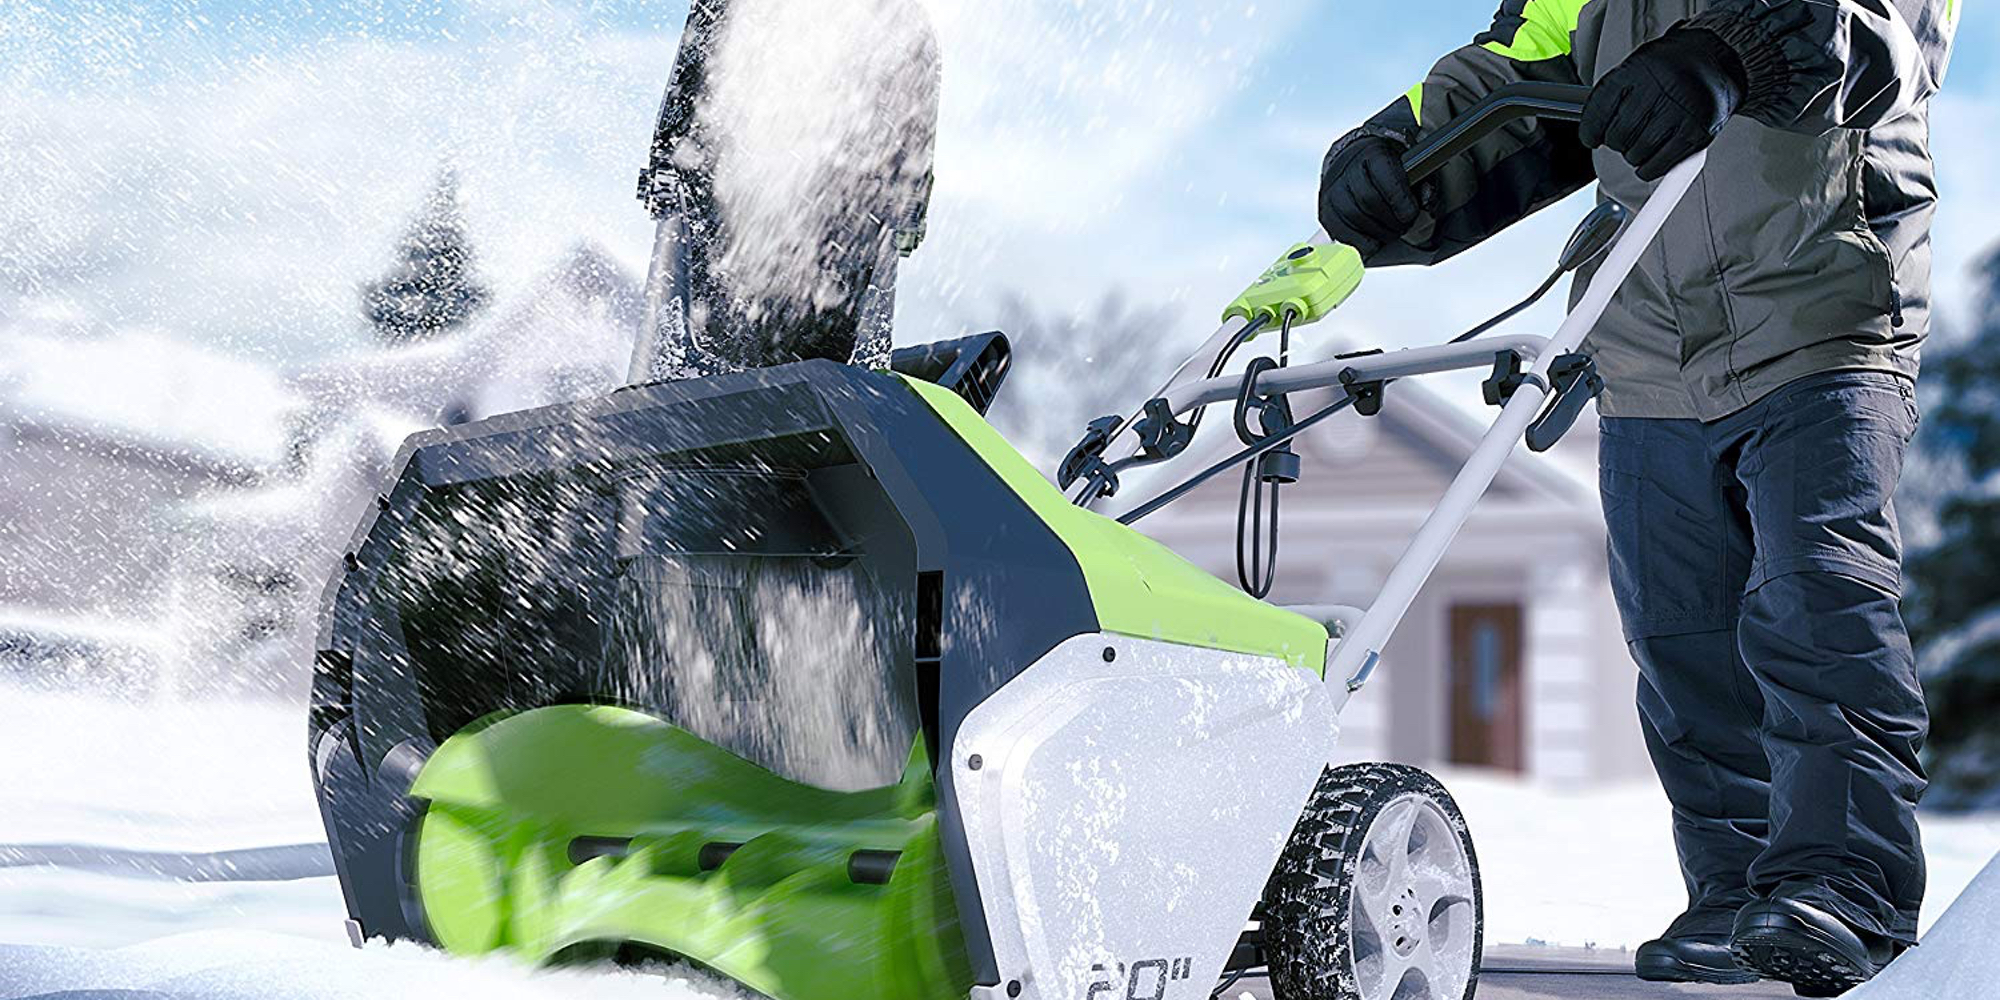 Greenworks 20-Inch Electric Snow Thrower is a must-have this winter, now at $101 (Reg. $140)